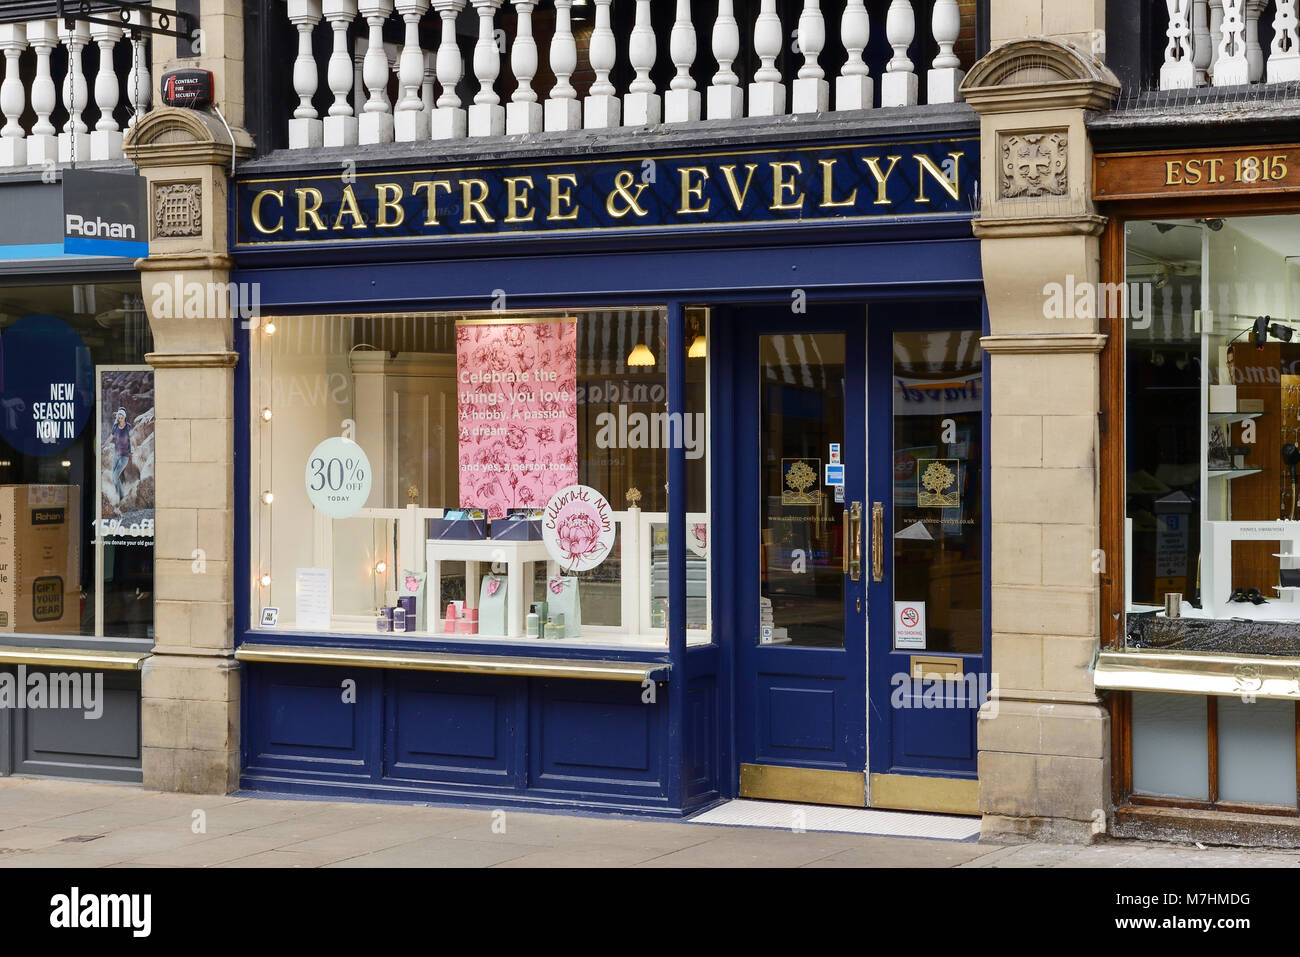 Crabtree & Evelyn shop front in Chester city centre UK - Stock Image